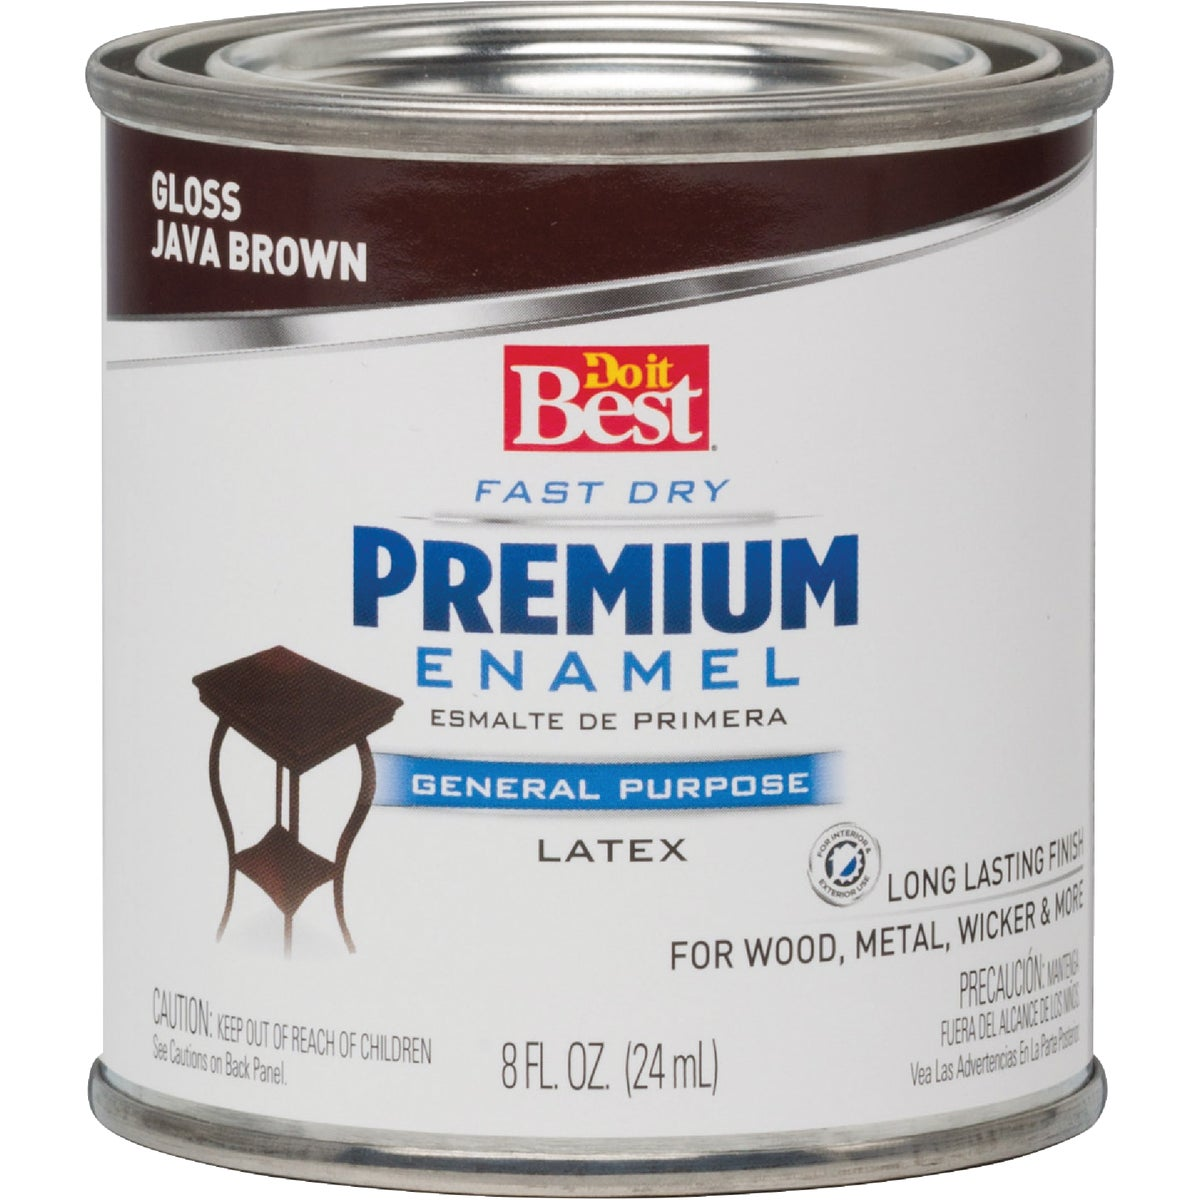 JAVA BROWN LATEX ENAMEL - 2107 by Rustoleum